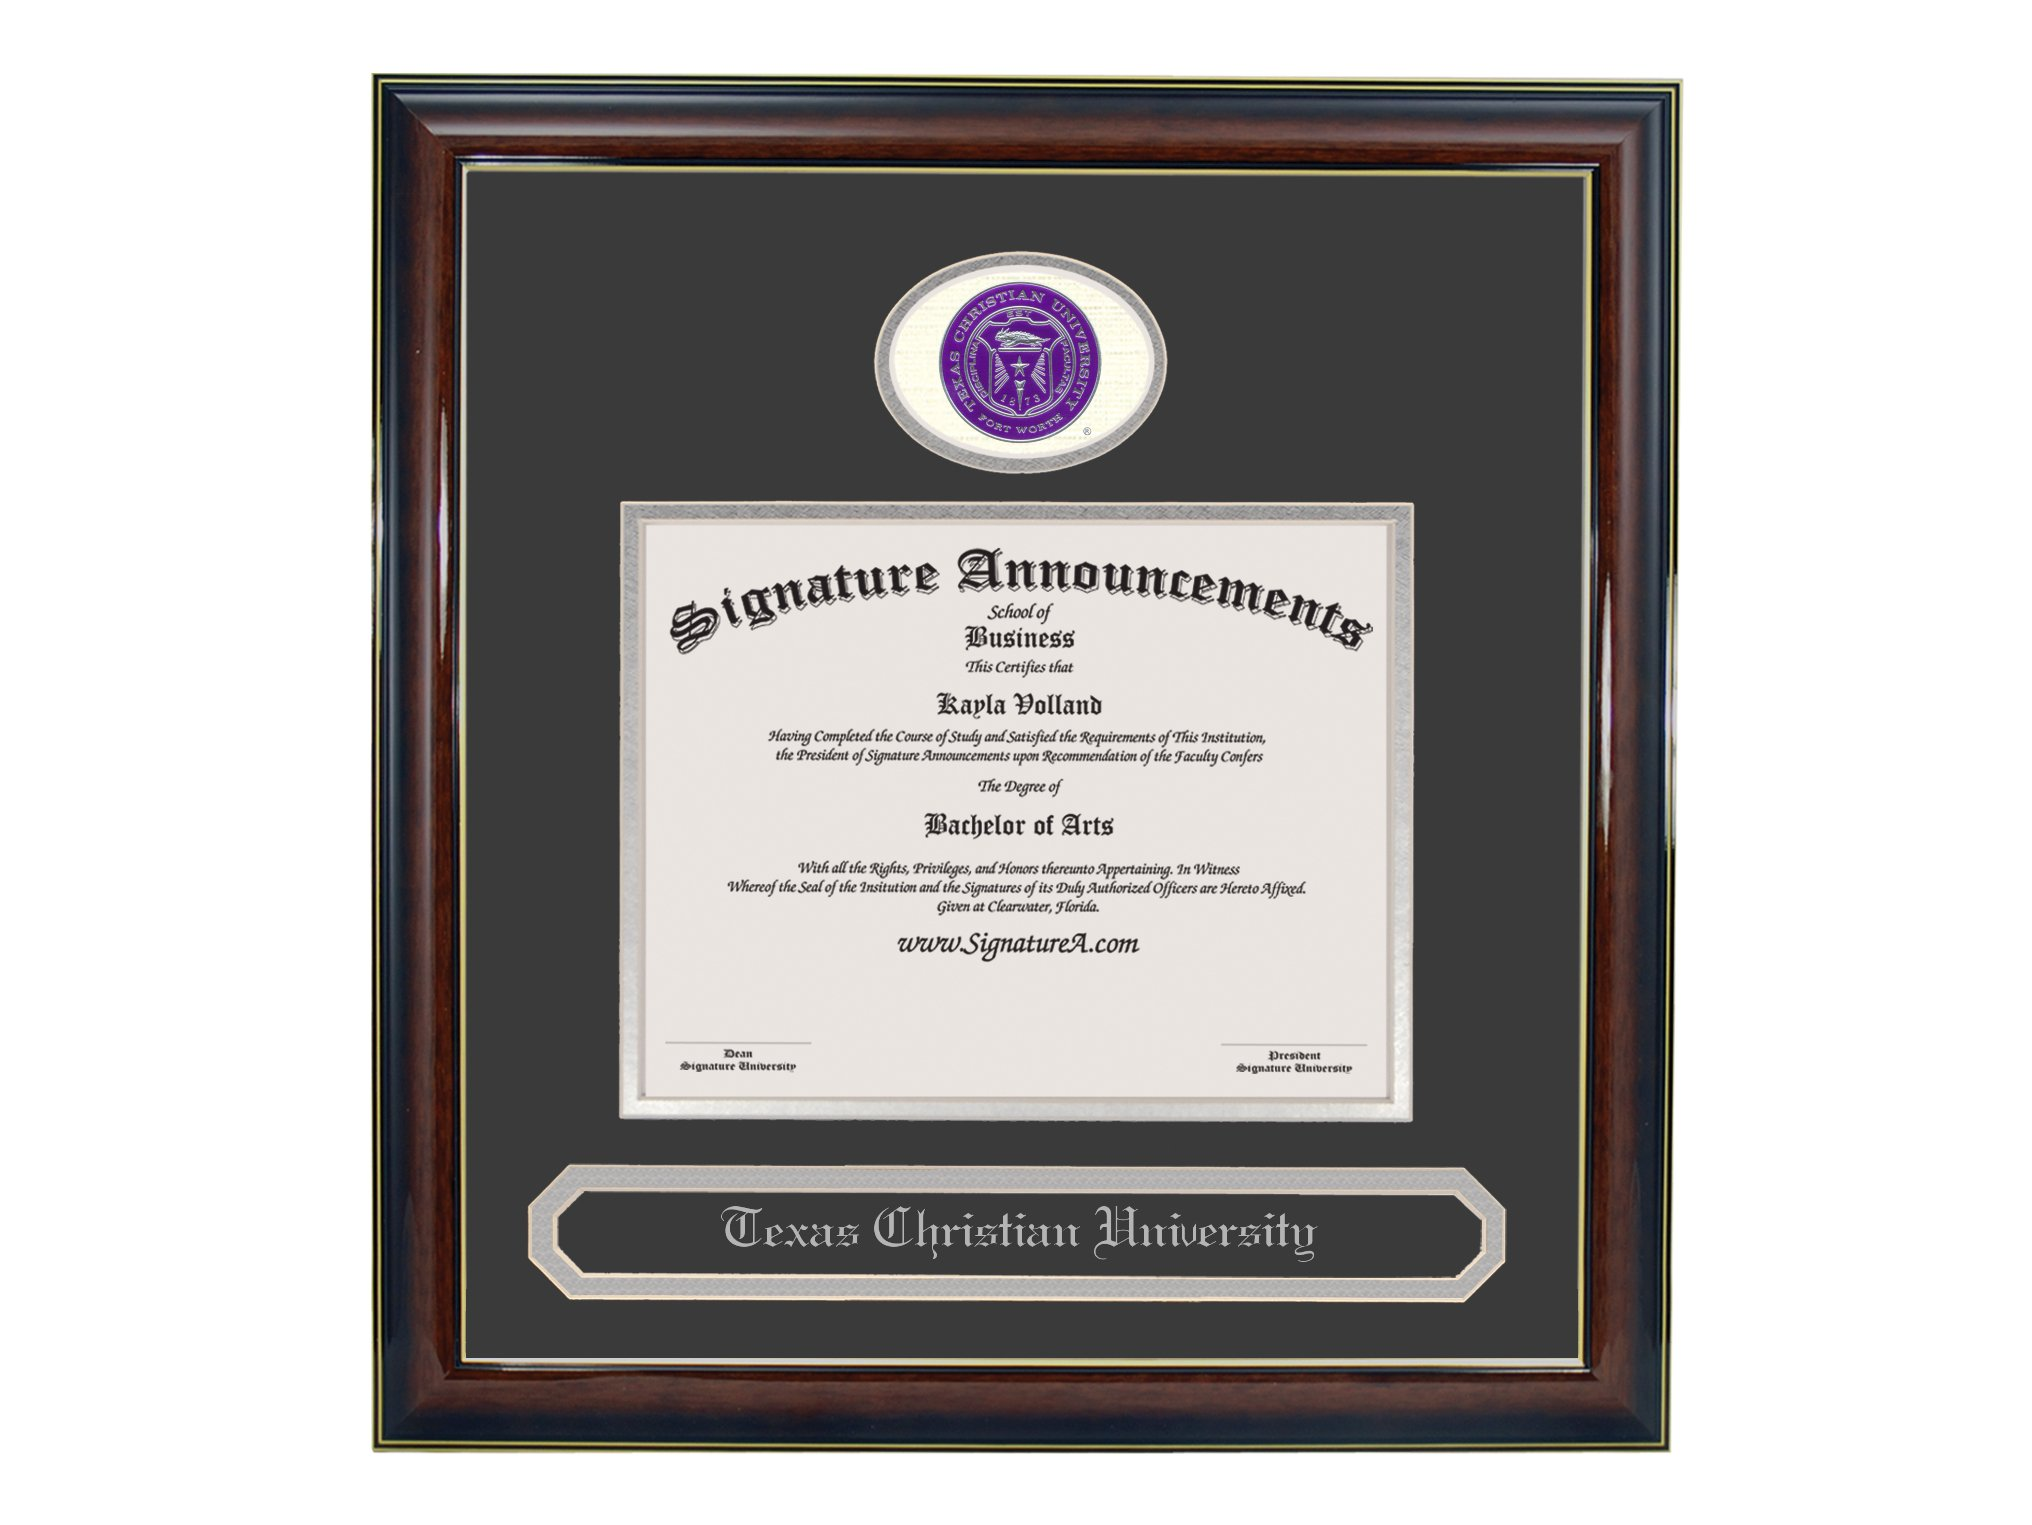 Signature Announcements Texas Christian University (TCU) Undergraduate and Graduate/Professional/Doctor Graduation Diploma Frame with Sculpted Foil Seal & Name (Gloss Mahogany w/Gold Accent, 16 x 16) by Signature Announcements